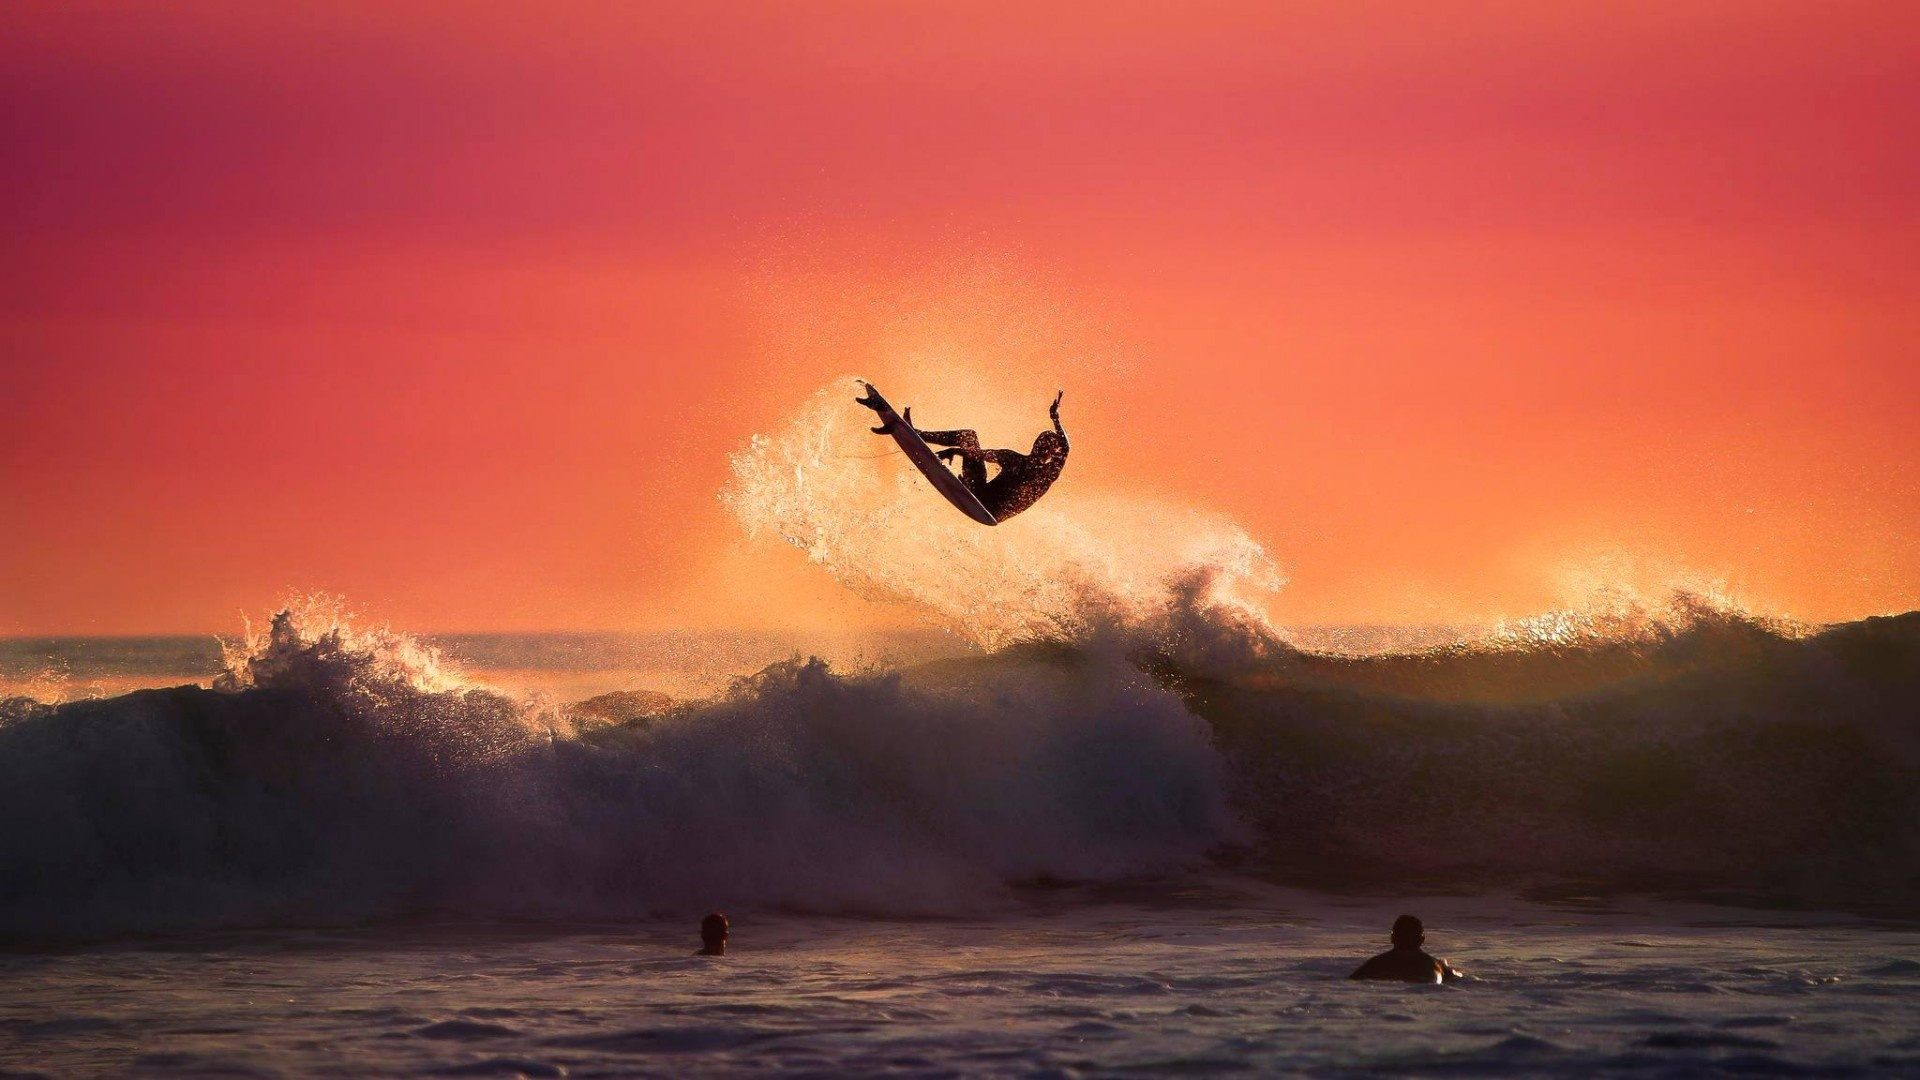 surfing wallpapers surfd 1920x1080